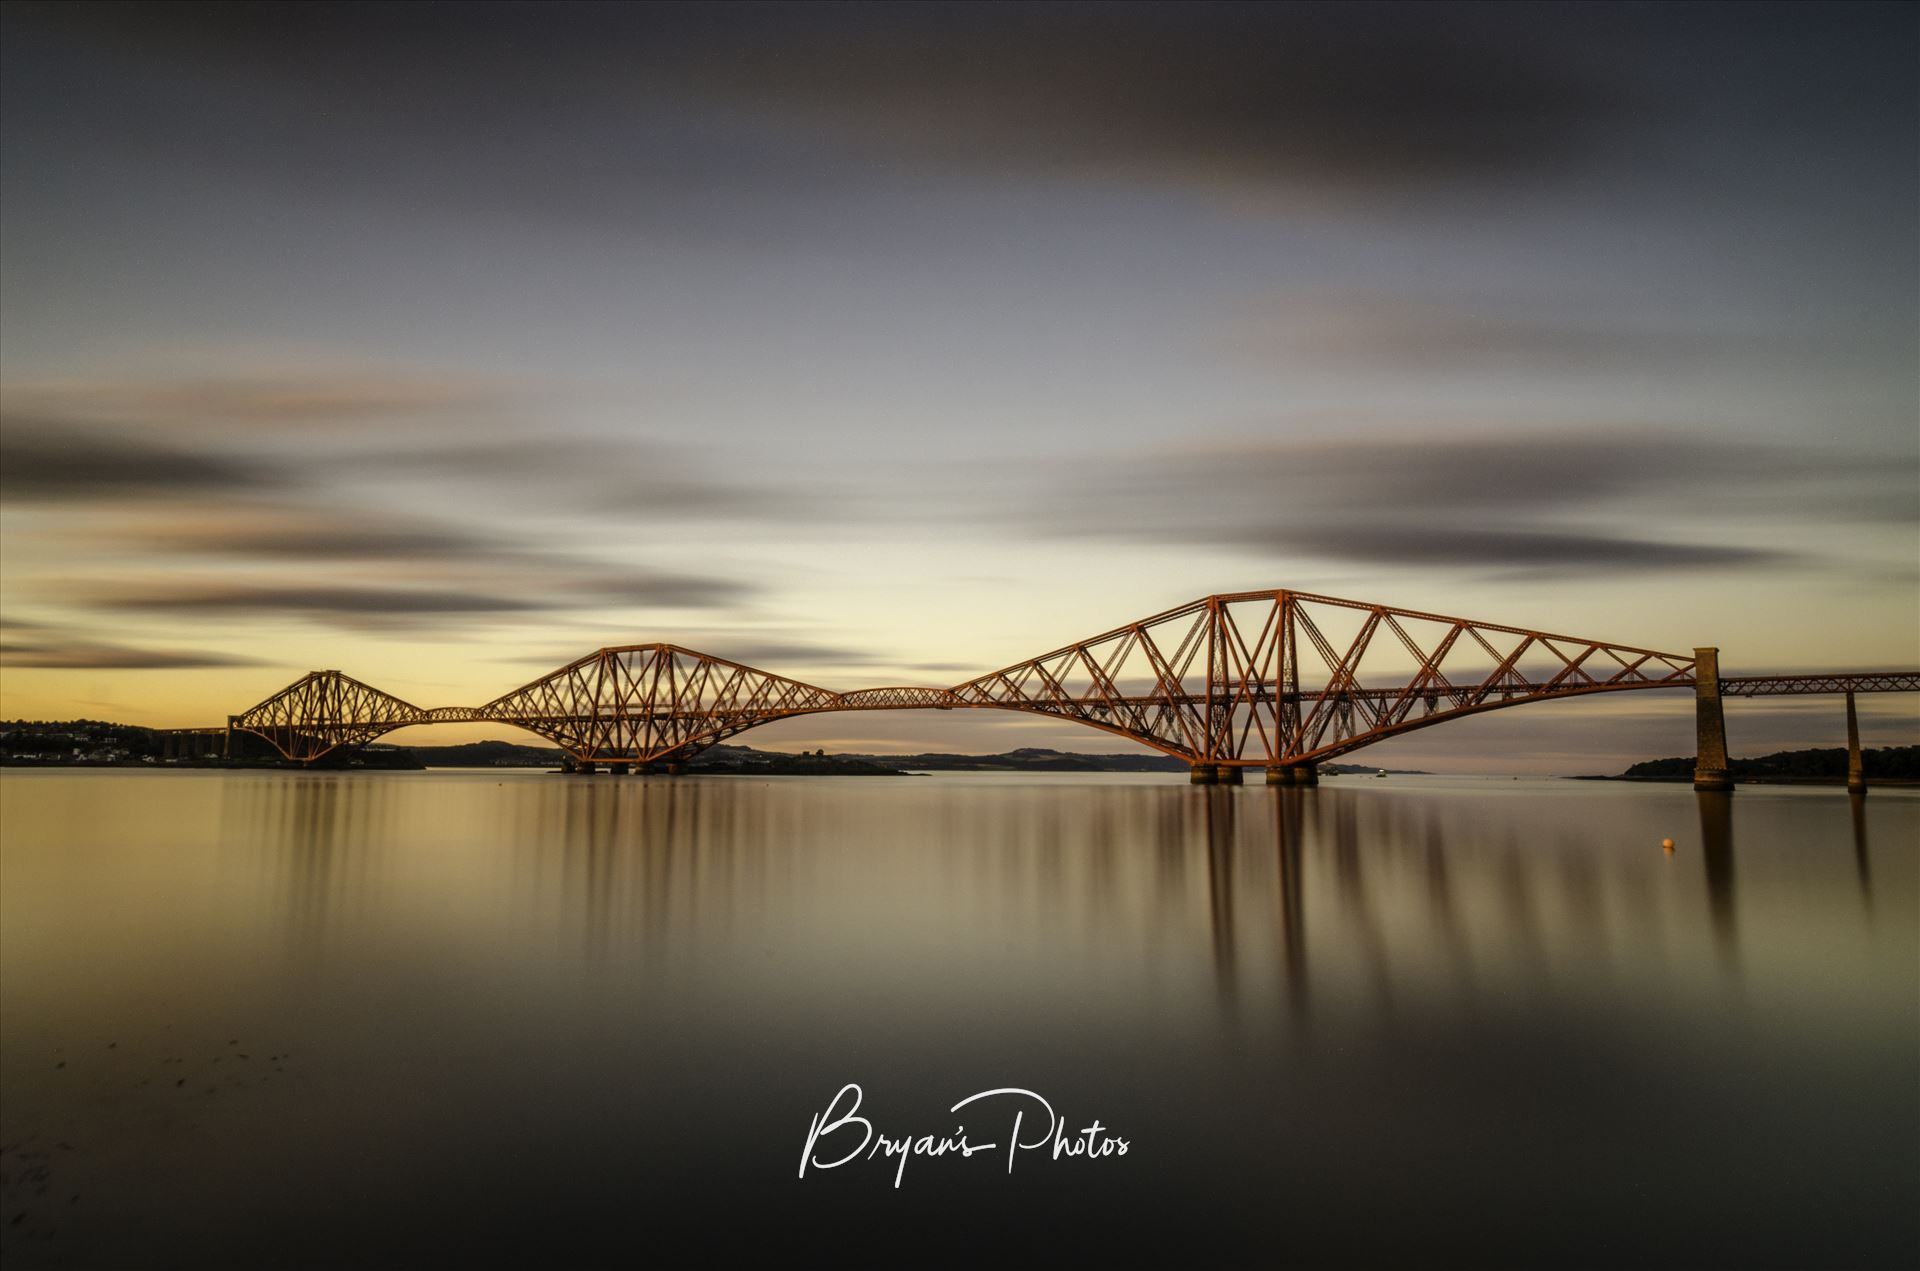 The Bridge at Sunset A long exposure photograph of the Forth Rail Bridge taken at sunset from South Queensferry. by Bryans Photos